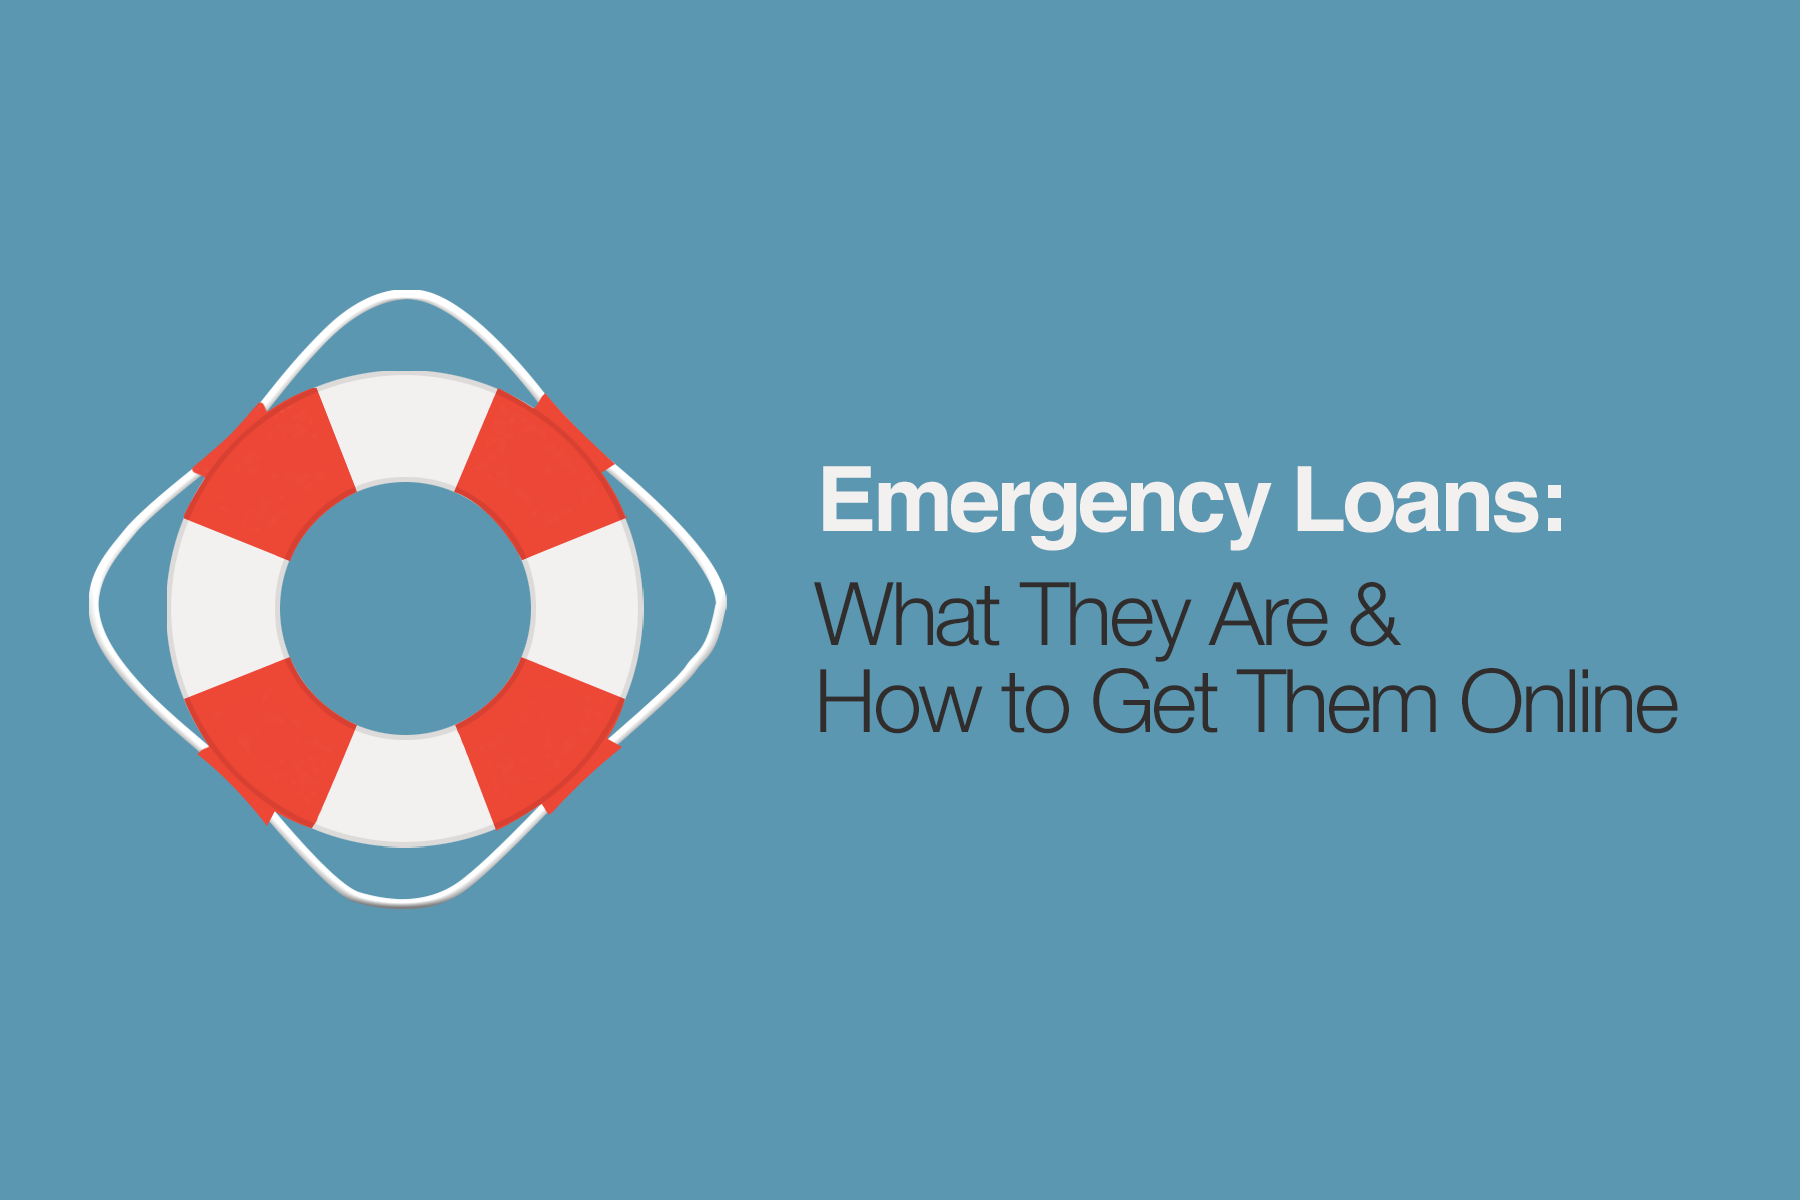 Emergency Loans Online: What they are and how to get them